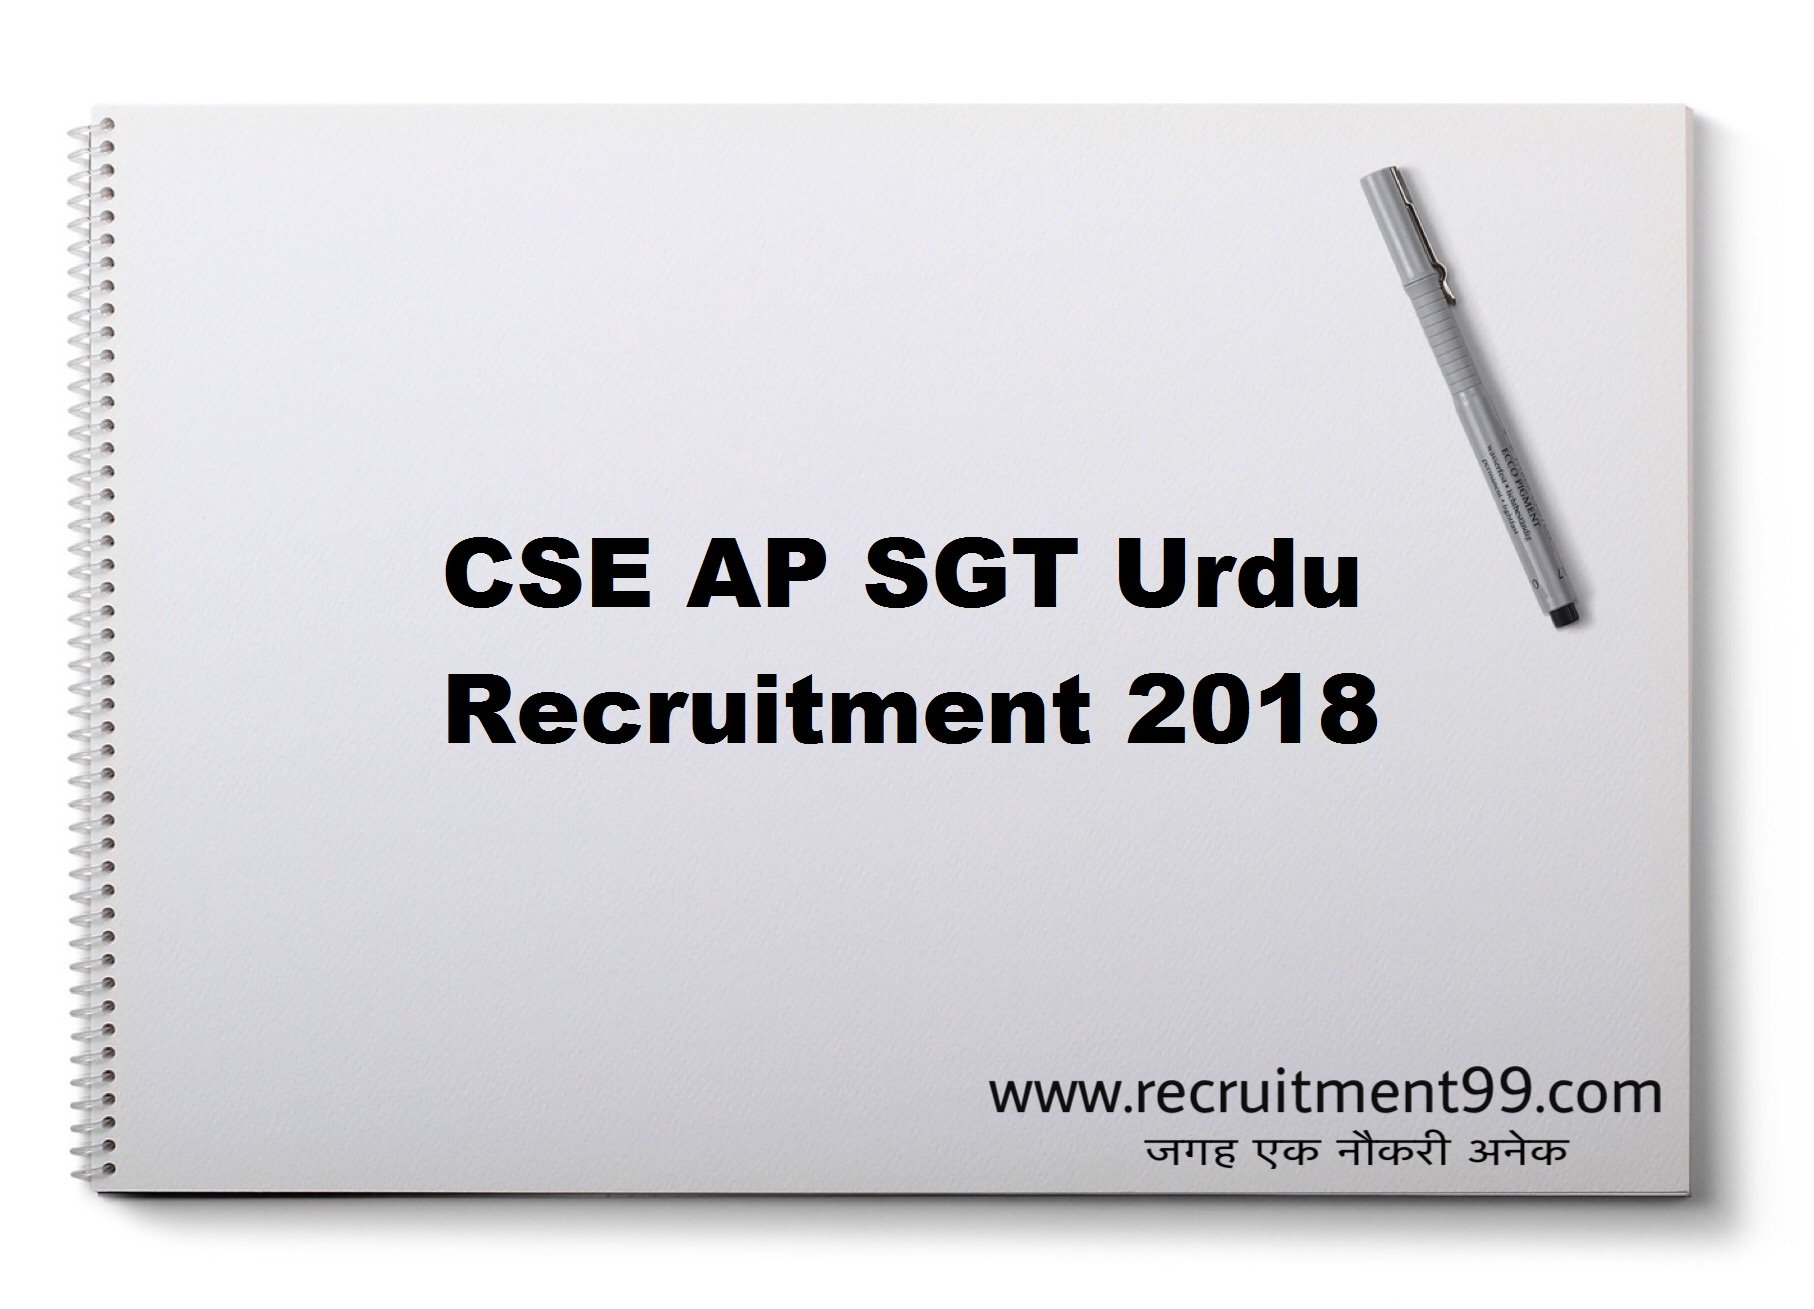 CSE AP SGT Urdu Recruitment Hall Ticket Result 2018